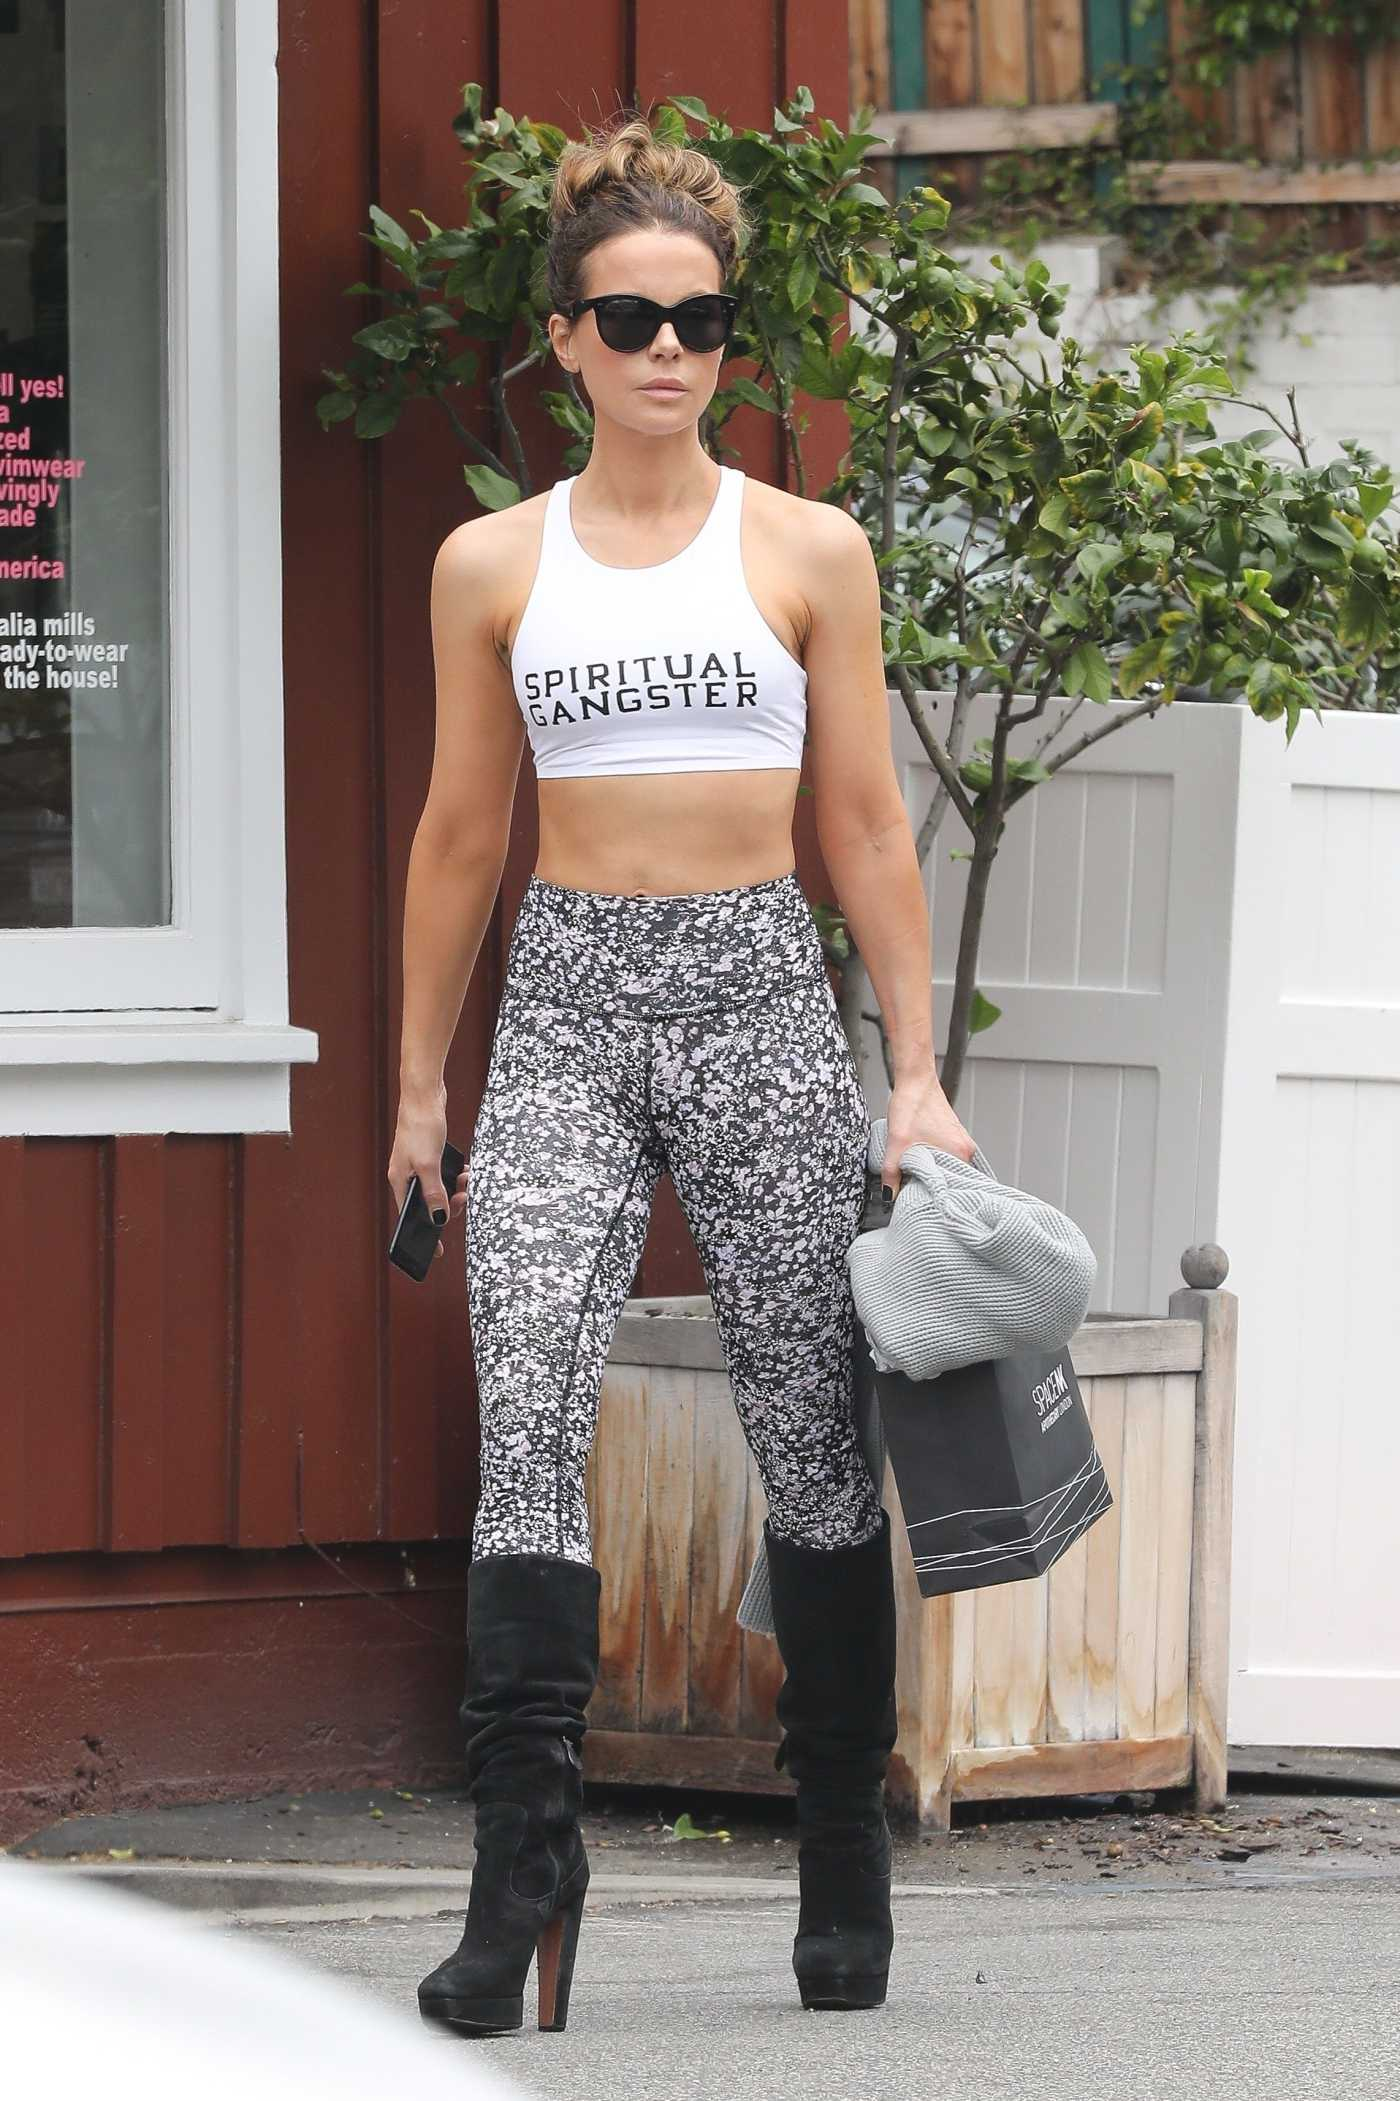 Kate Beckinsale in a White Sports Bra Was Seen Out in Brentwood 06/14/2019